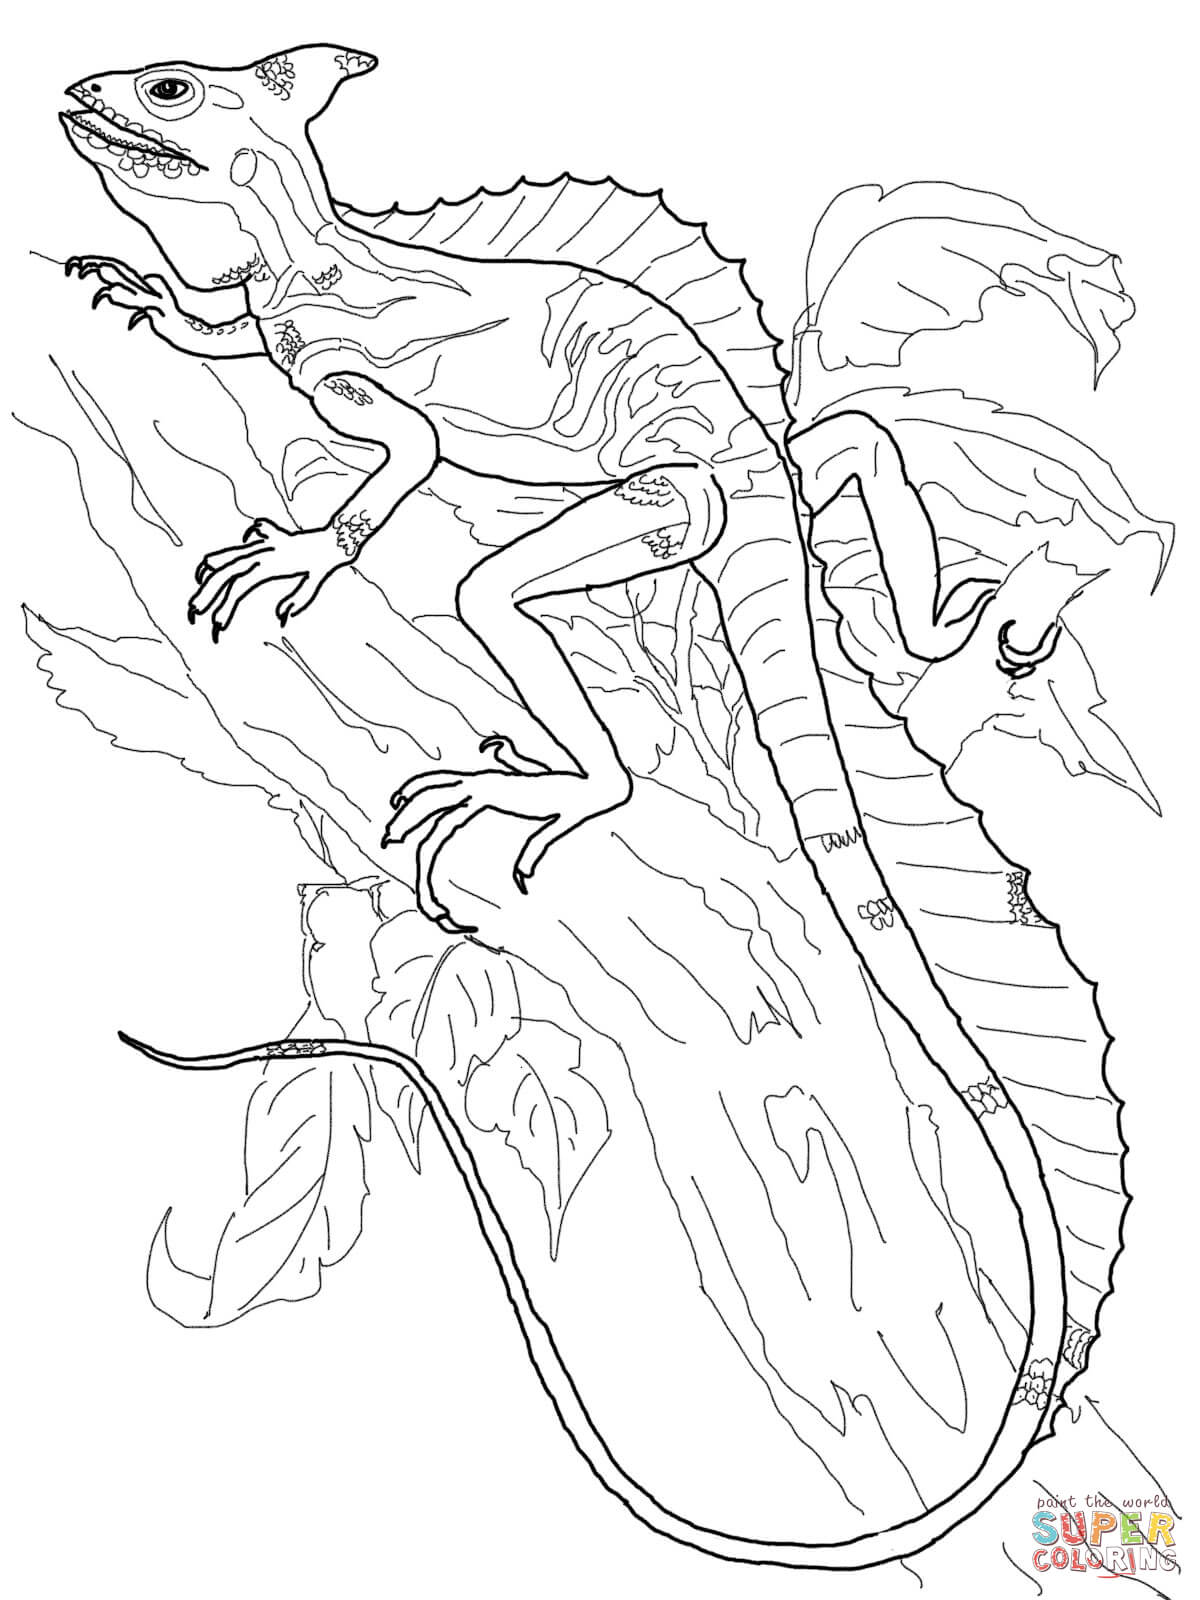 lizard for coloring lizard coloring page free lizard coloring pages for coloring lizard